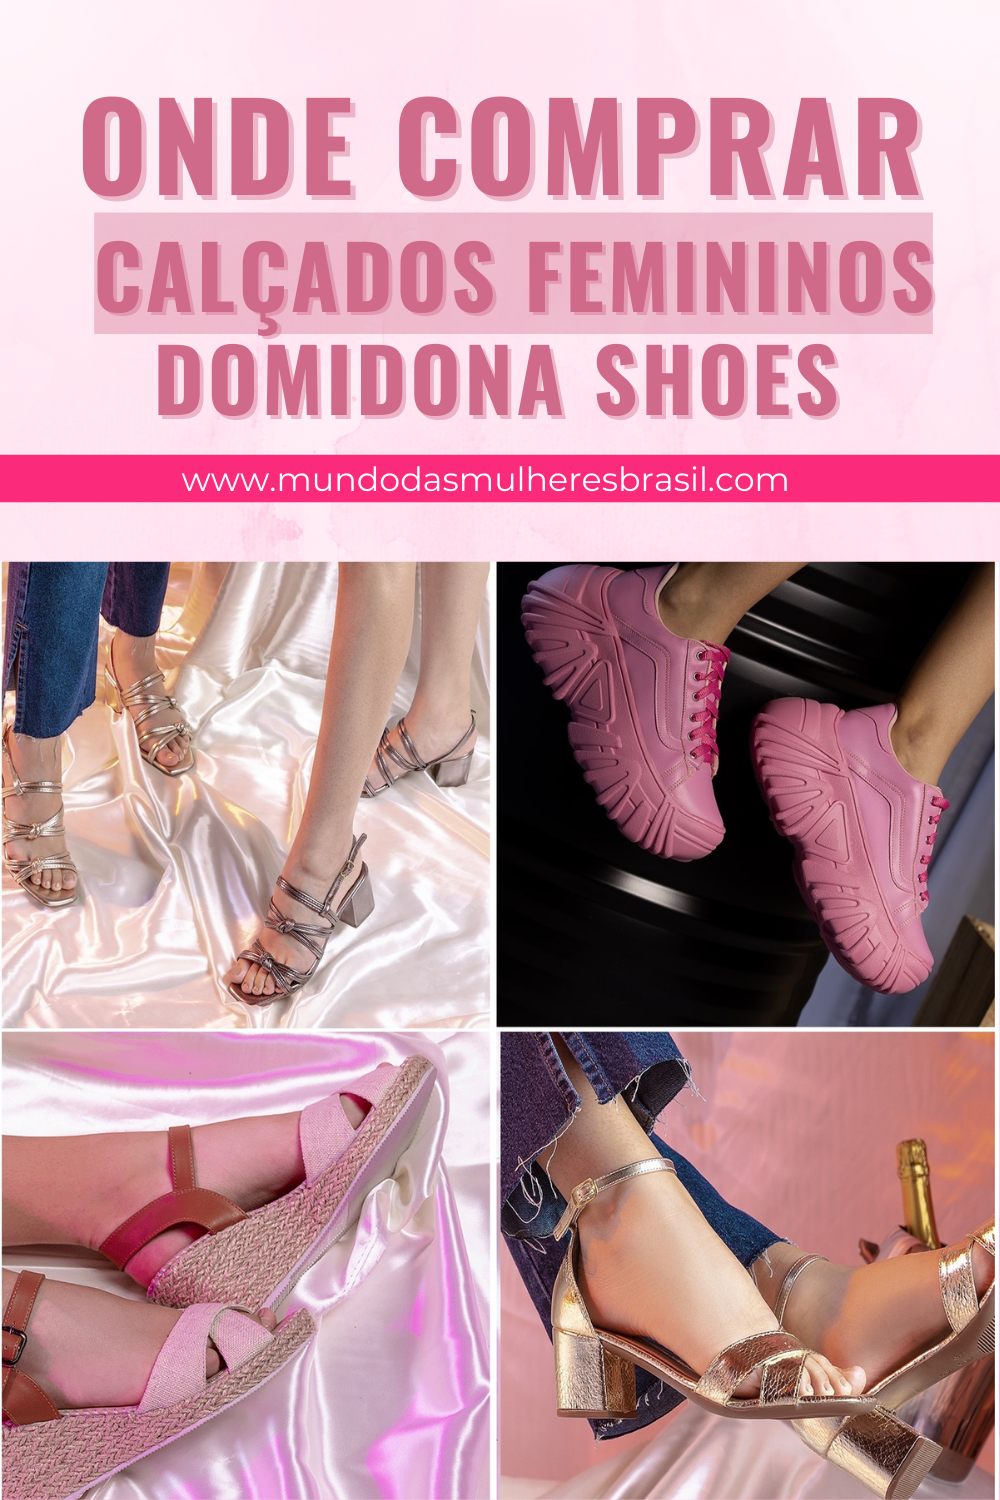 domidona shoes